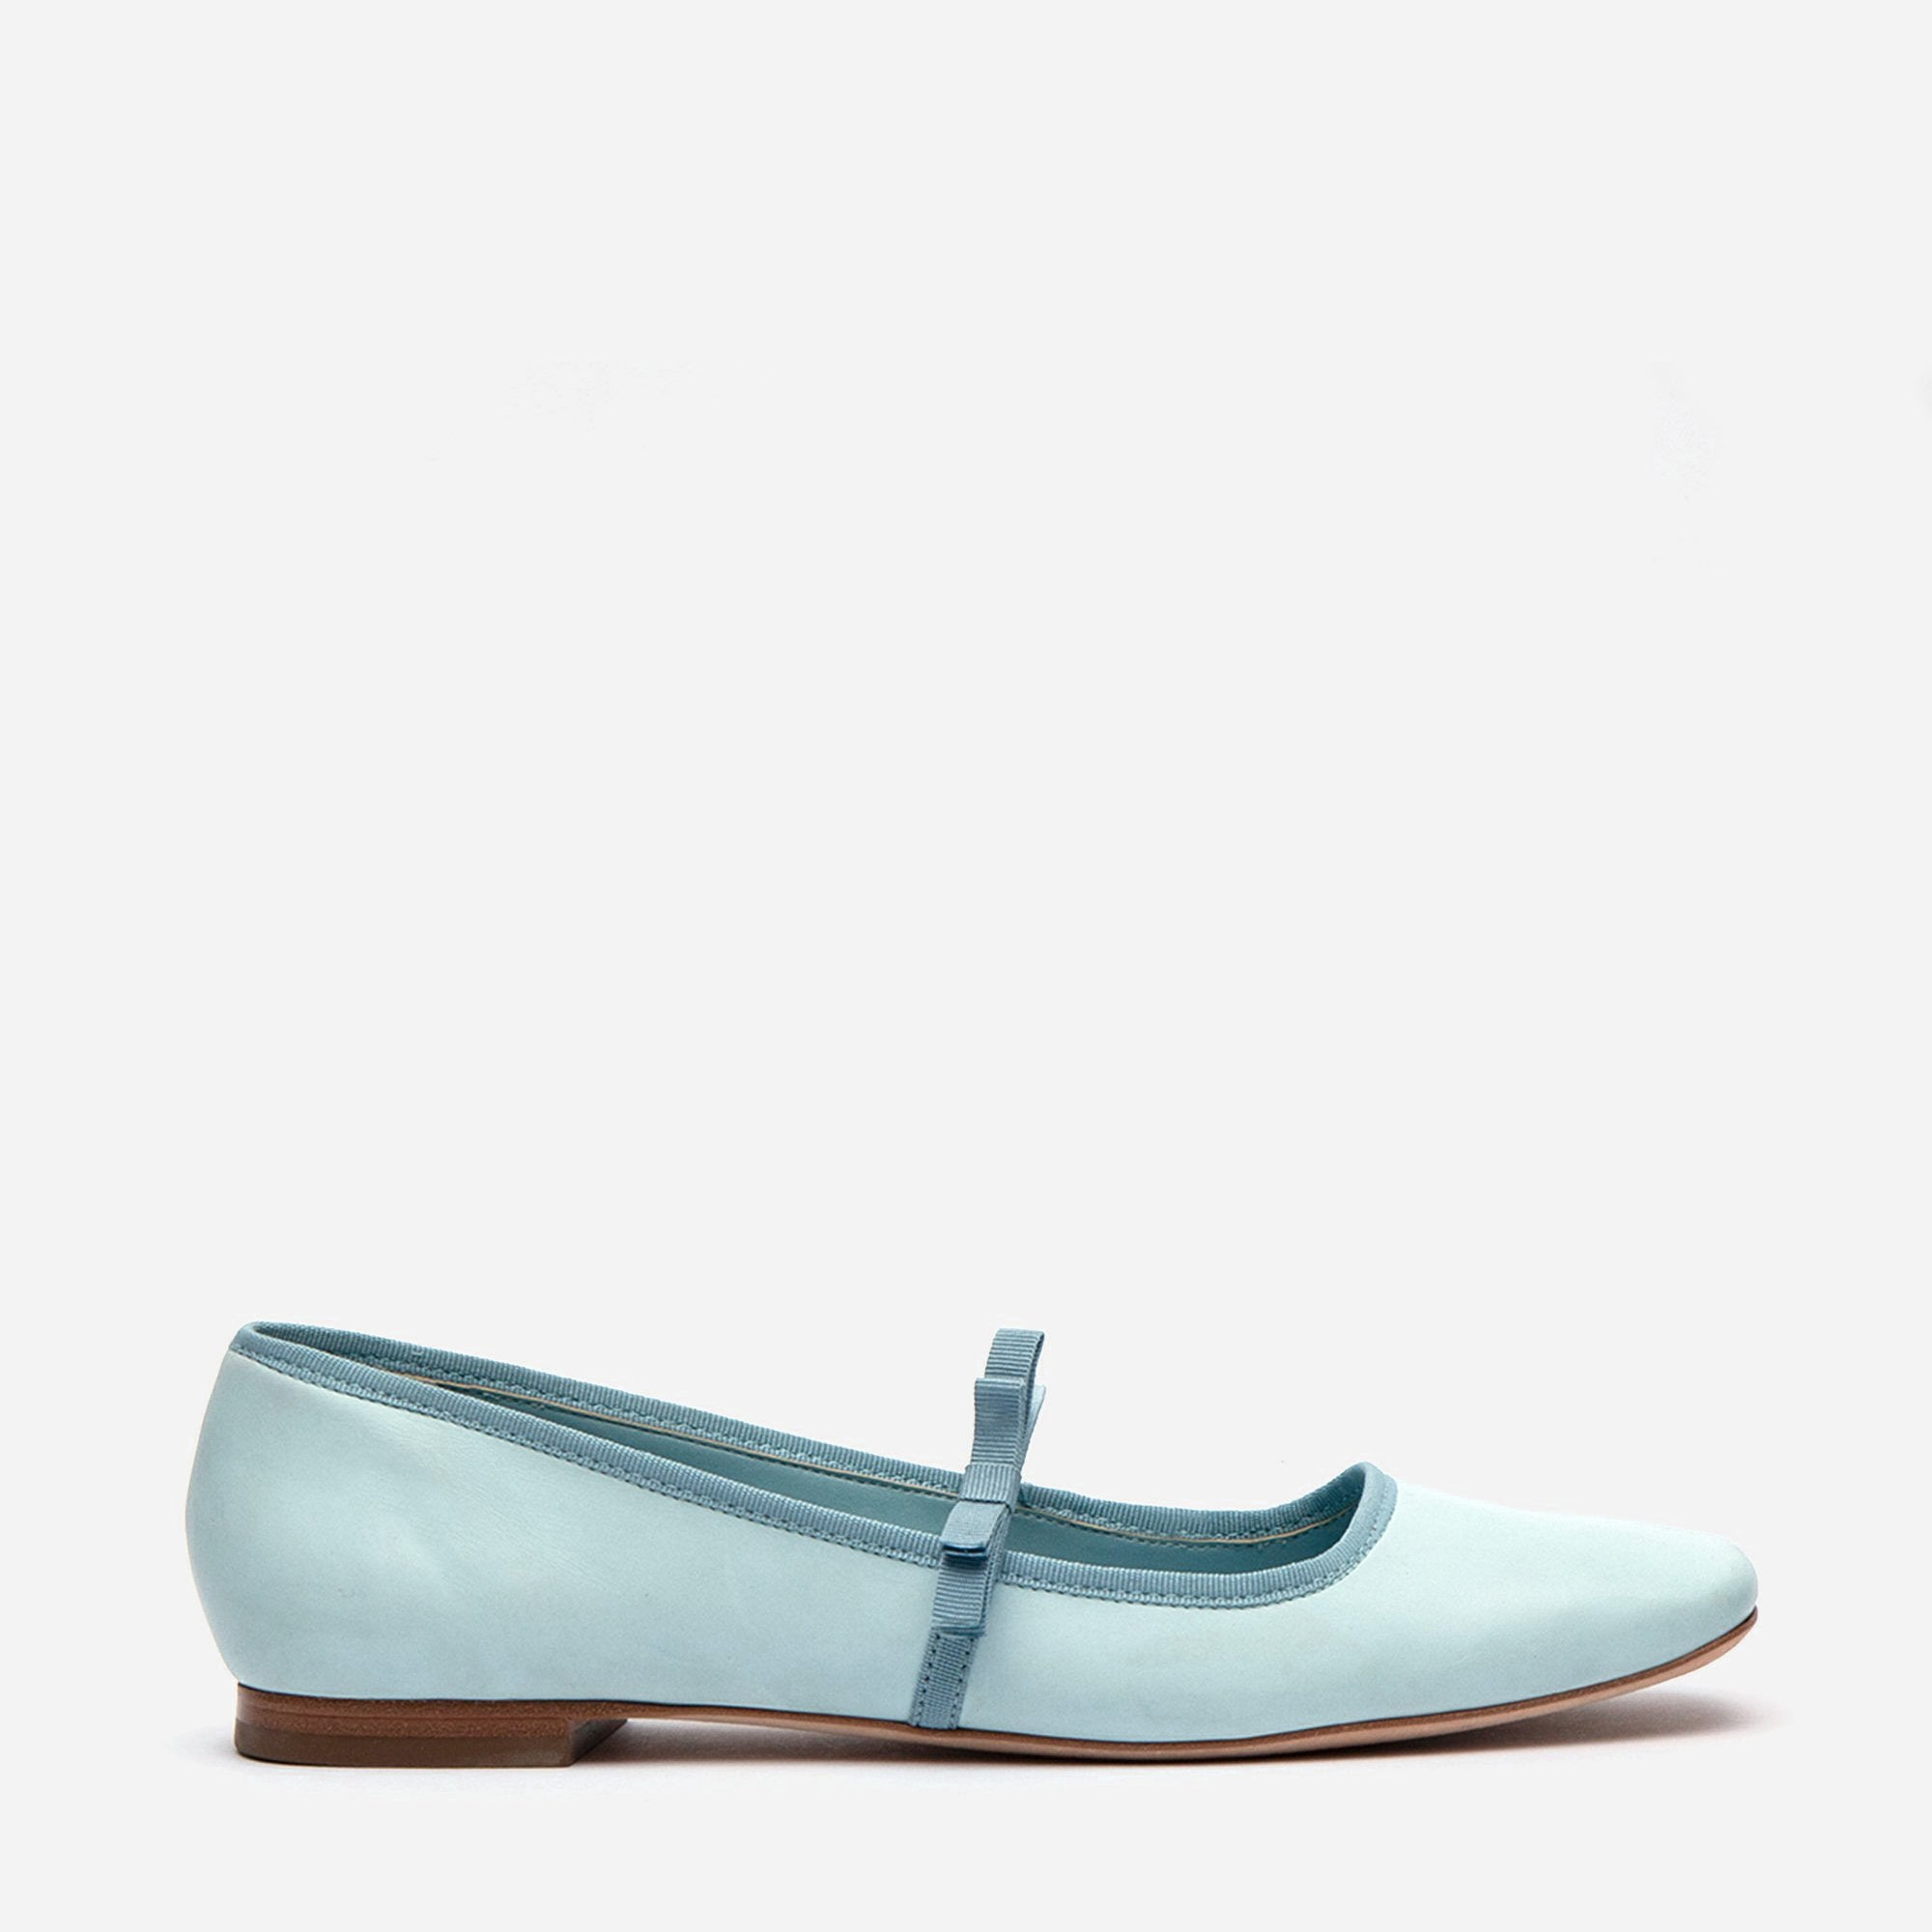 Jude Mary Jane Leather Flat Light Blue - Frances Valentine